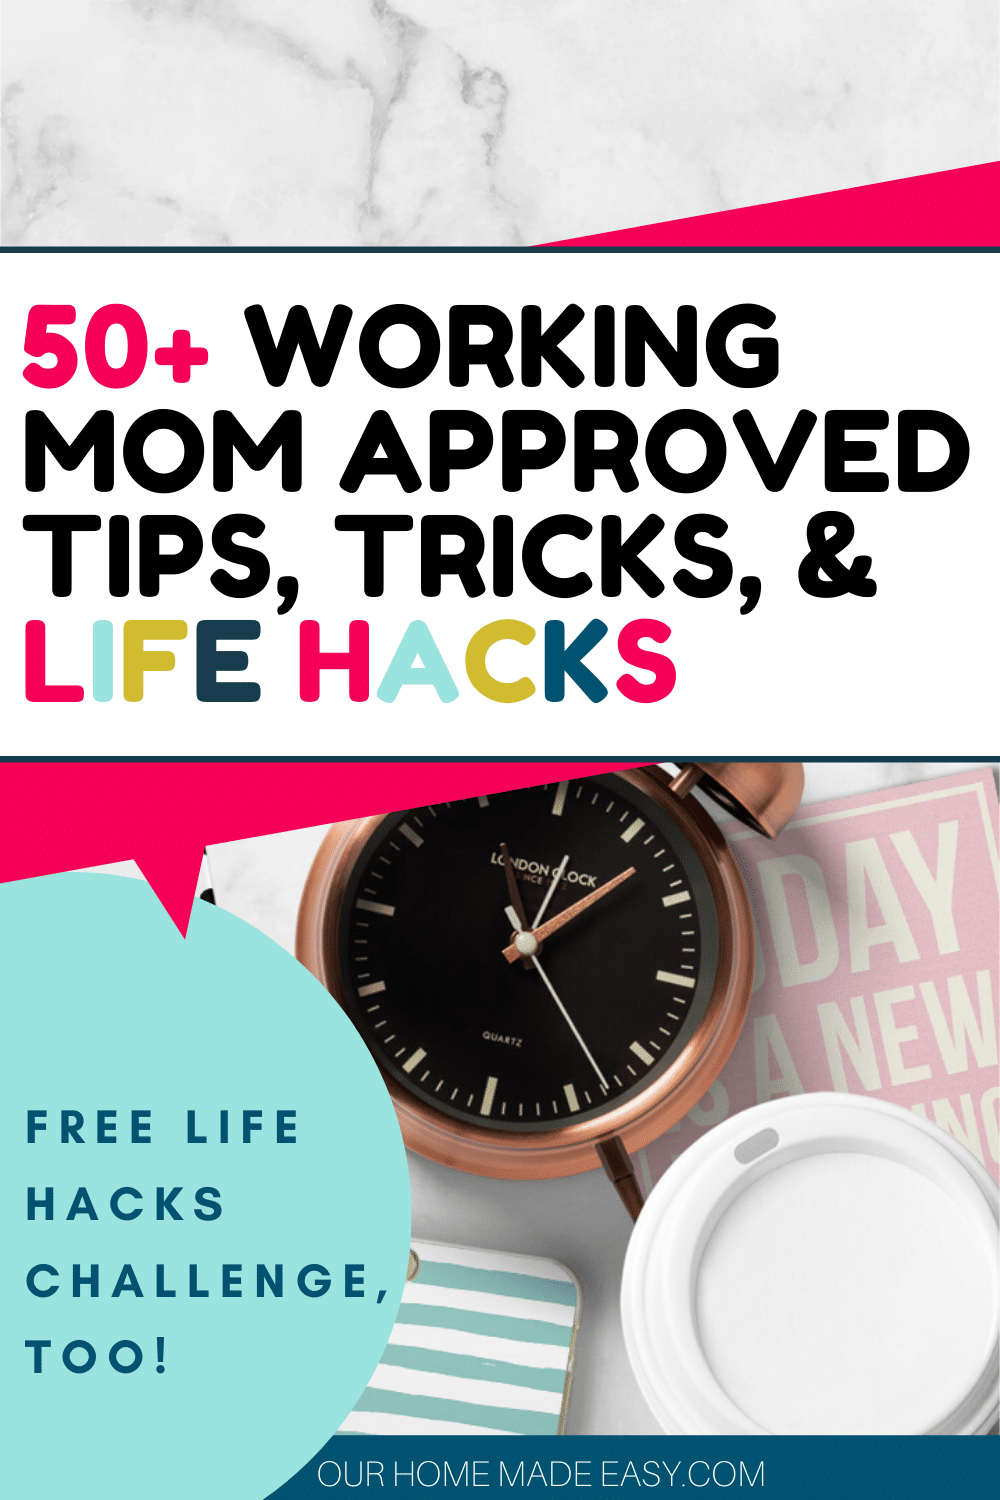 50+ working mom resources, tips, tricks, and life hacks